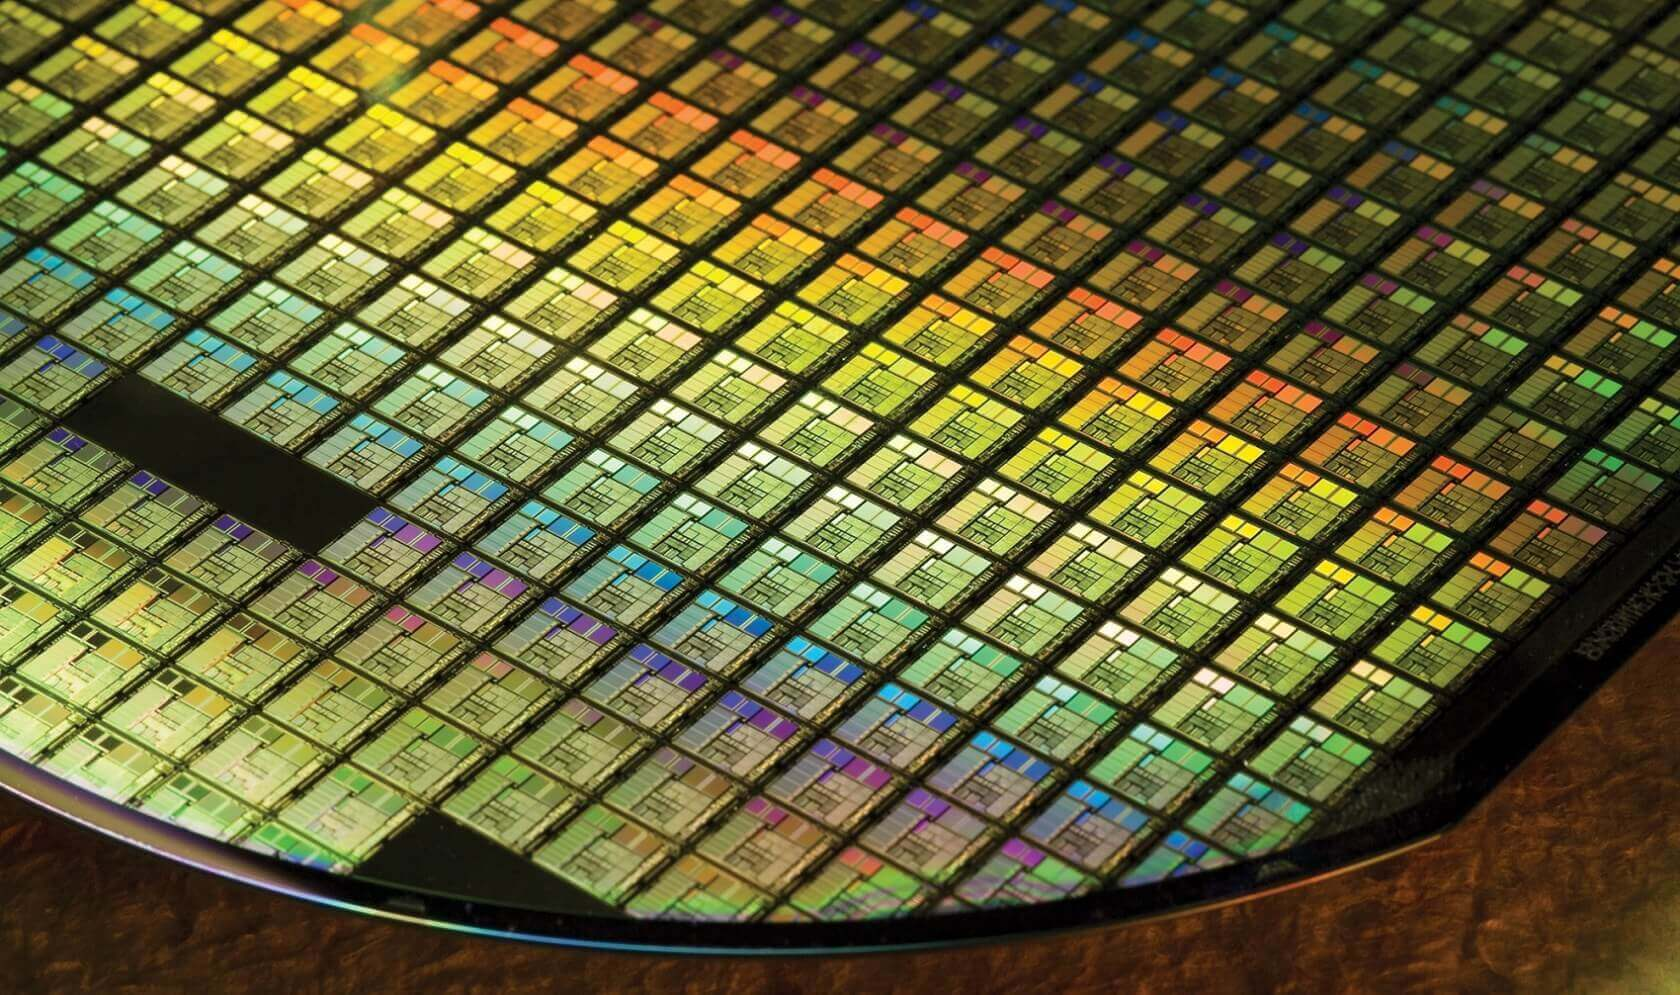 TSMC launches WoW 3D chip packaging tech